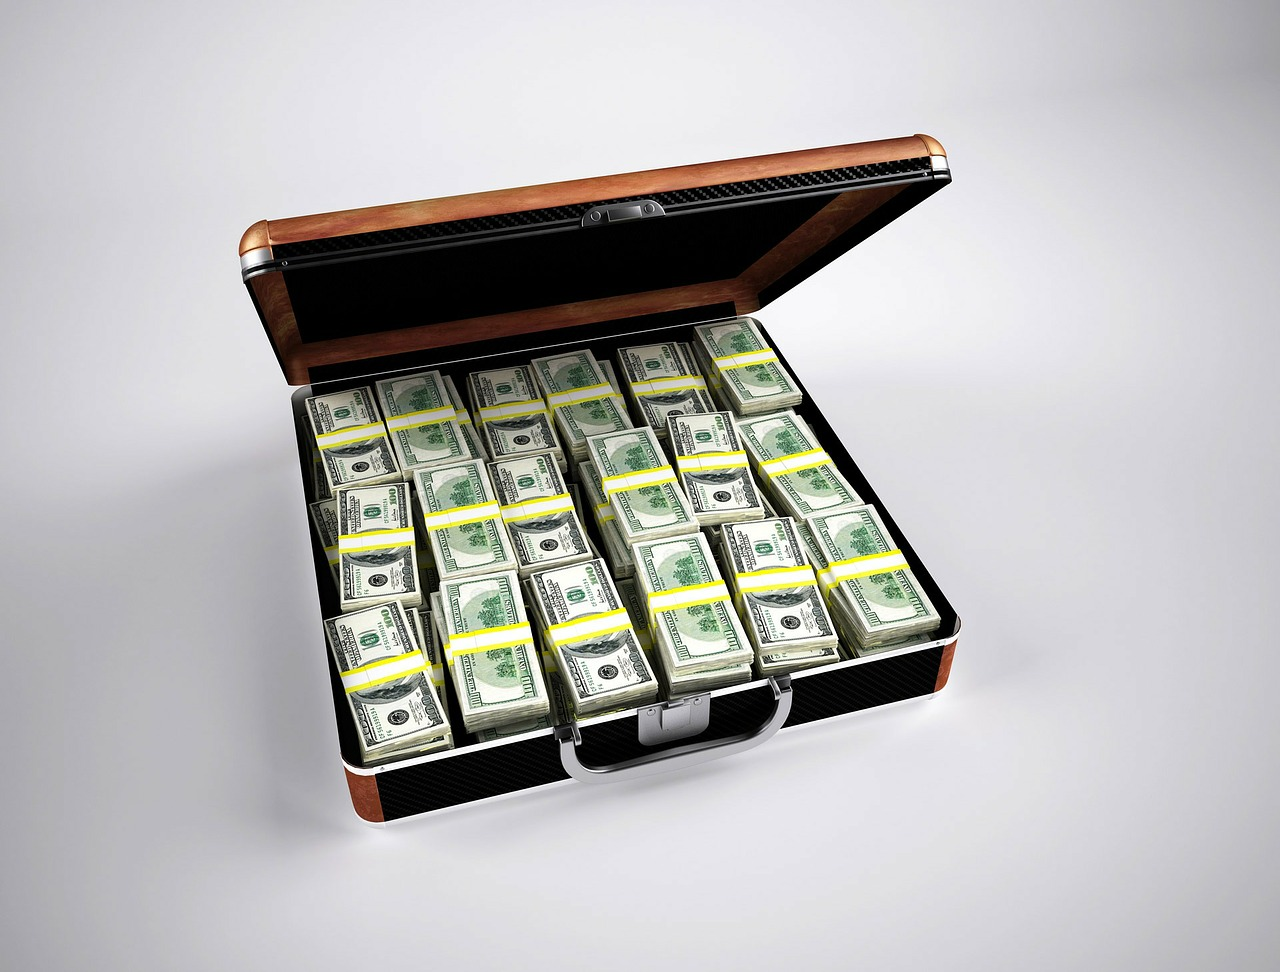 You might be surprised how much money you can make in sales (just don't put it in a drug money briefcase like some guy did to make this stock photo).